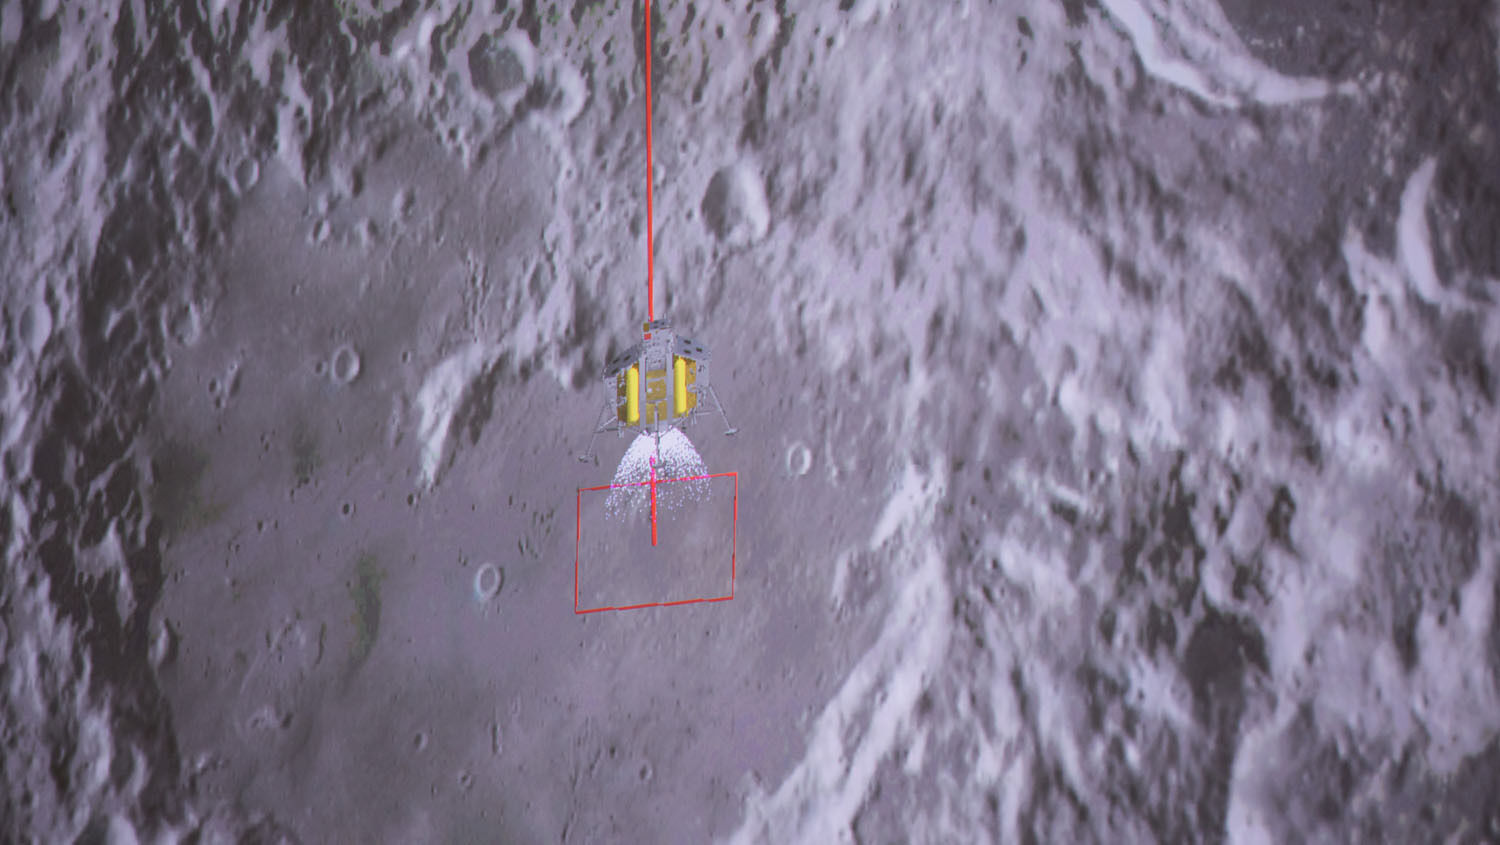 Chinese craft lands on 'dark' side of moon